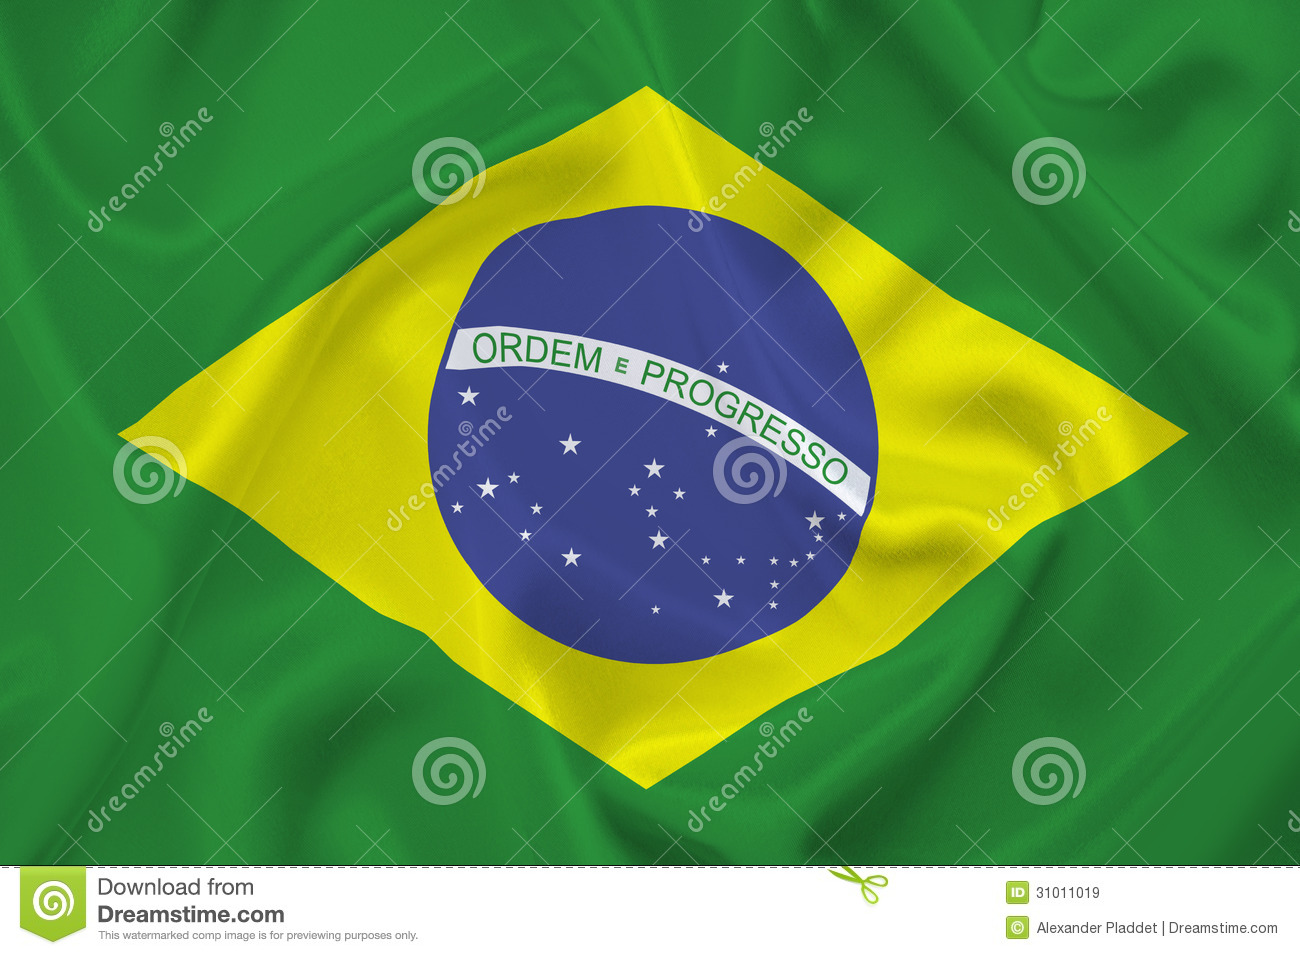 flag of brazil royalty free stock images image 31011019 free clipart union jack flag Union and Confederate Flags